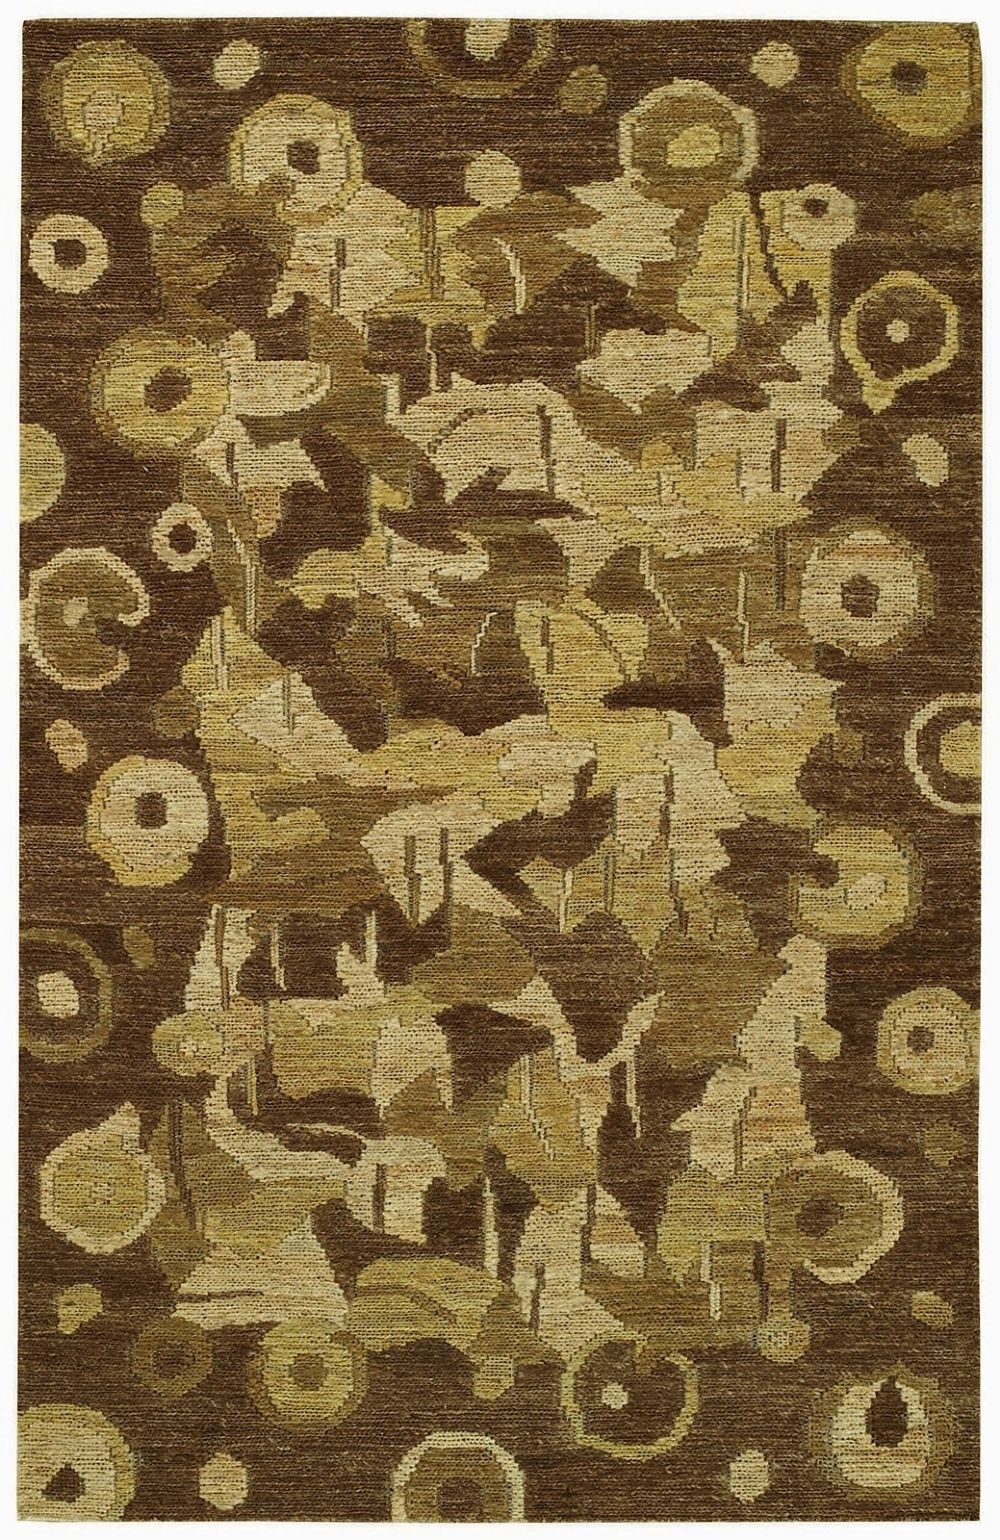 capel karma naturals-burl contemporary area rug collection